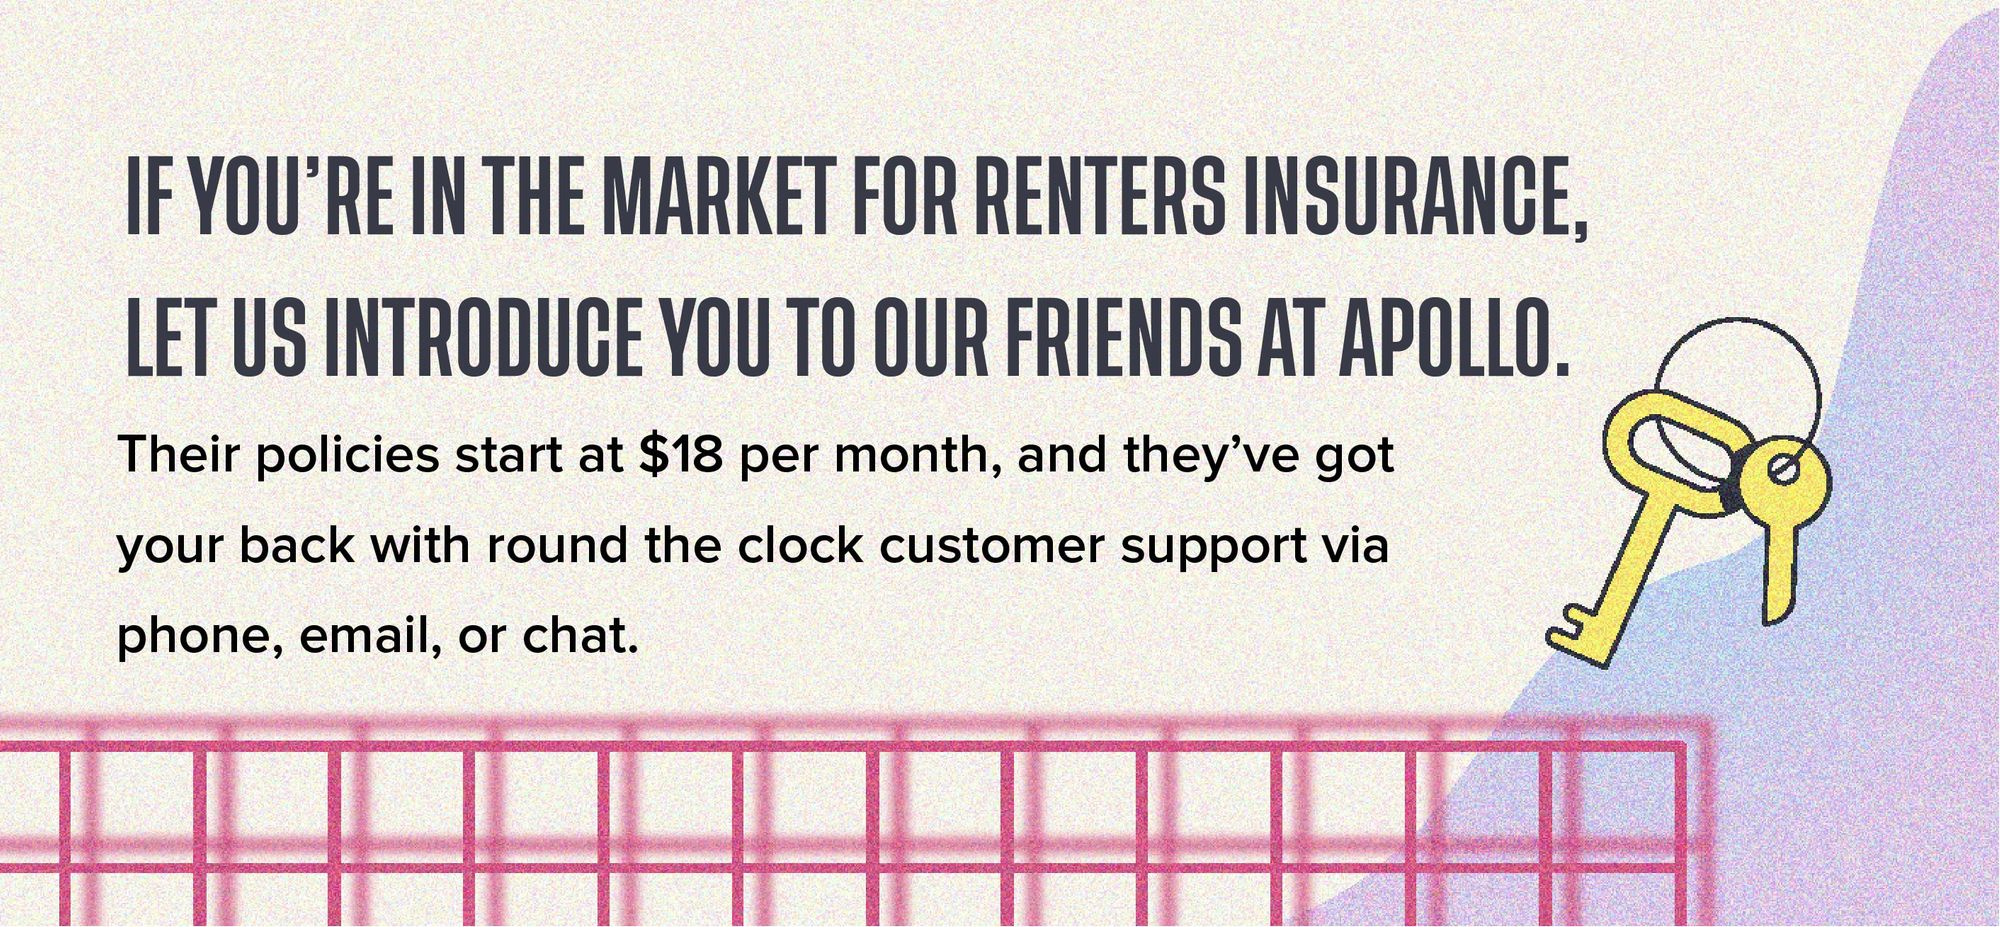 If you're in the market for renters insurance, let us introduce you to our friends at Apollo. Their policies start at $18 per month, and they've got your back with round the clock customer support via phone, email, or chat.